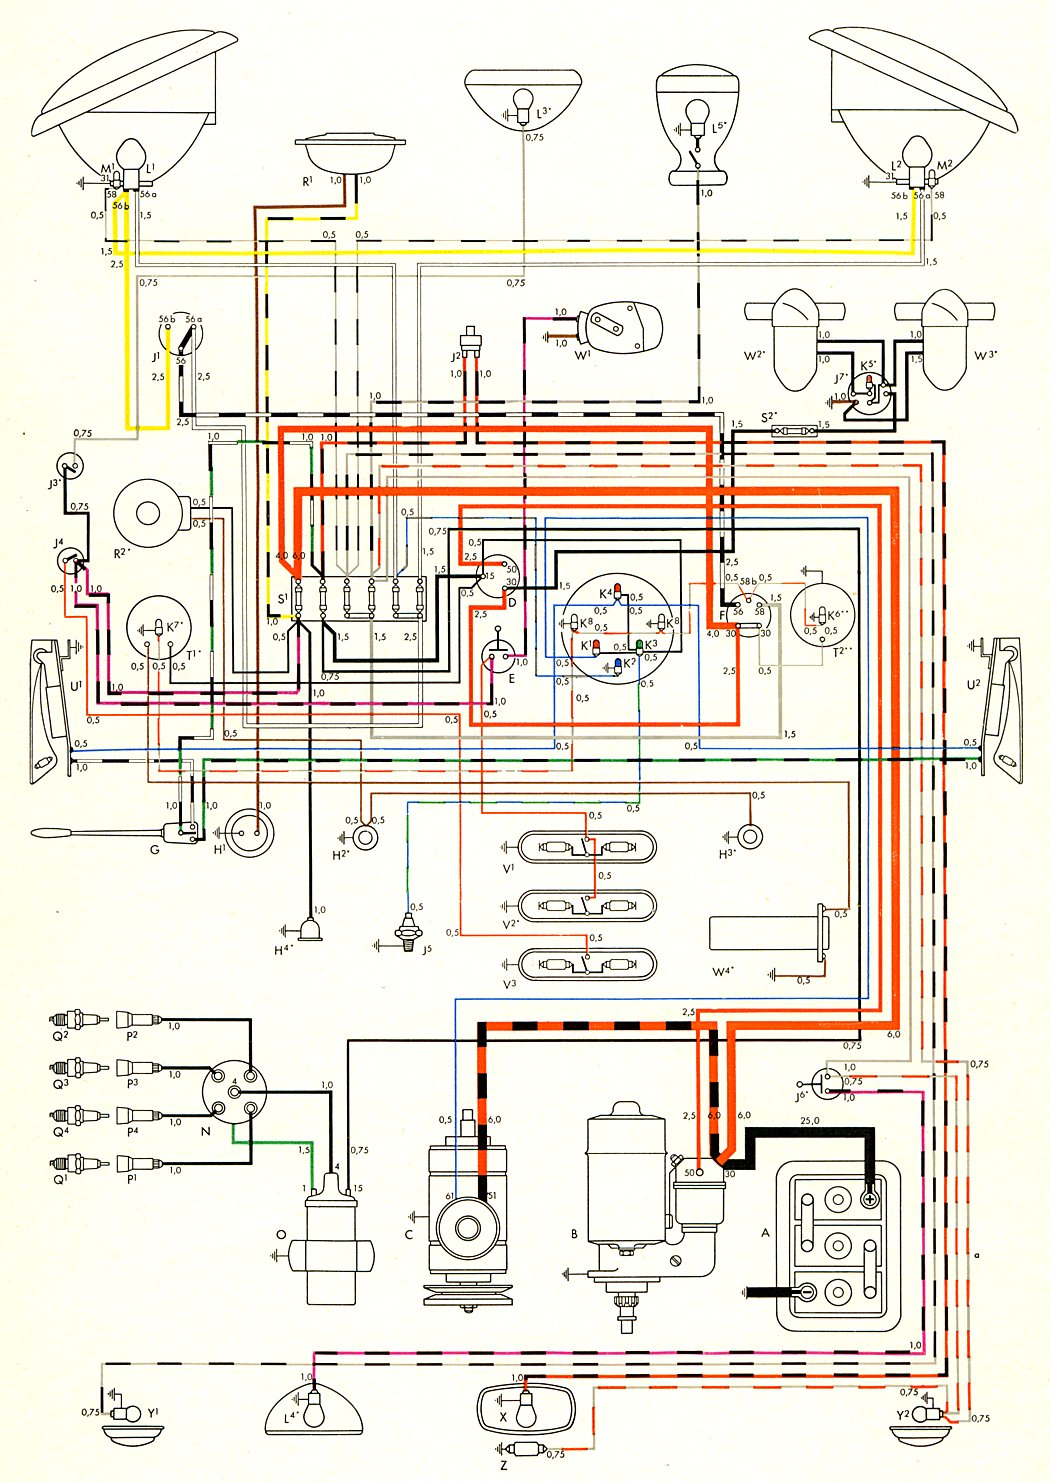 1975 Vw Bus Engine Wiring Diagram Excellent Electrical Type 2 Diagrams Rh Crocodilecruisedarwin Com 76 77 Van